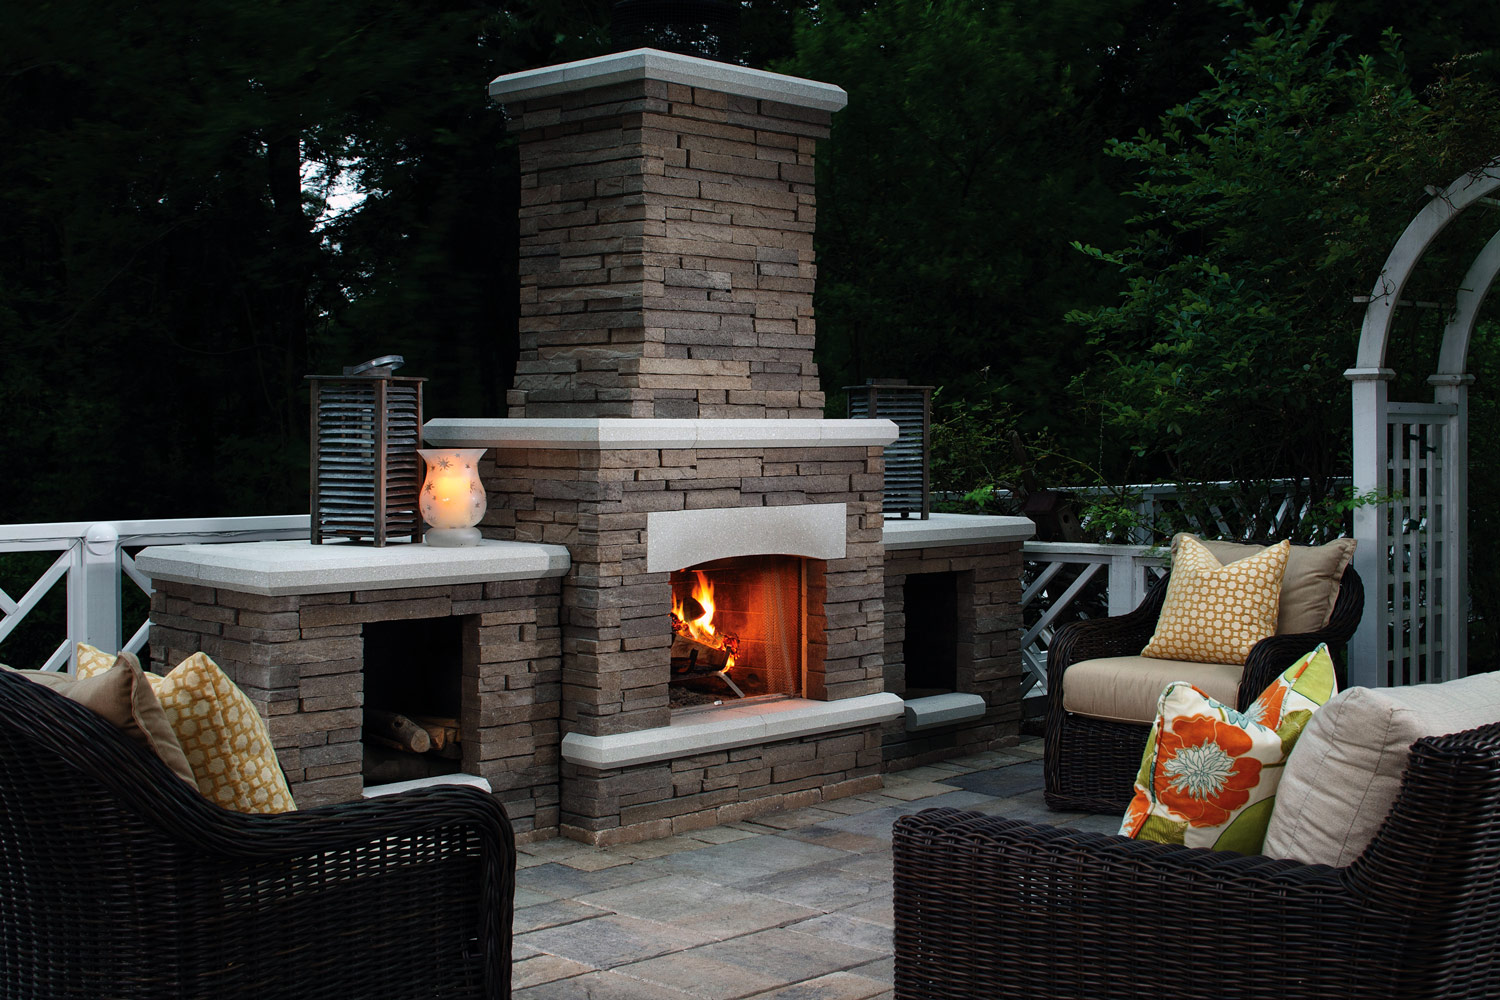 Outdoor Fireplace Installation in Santa Clara County, California